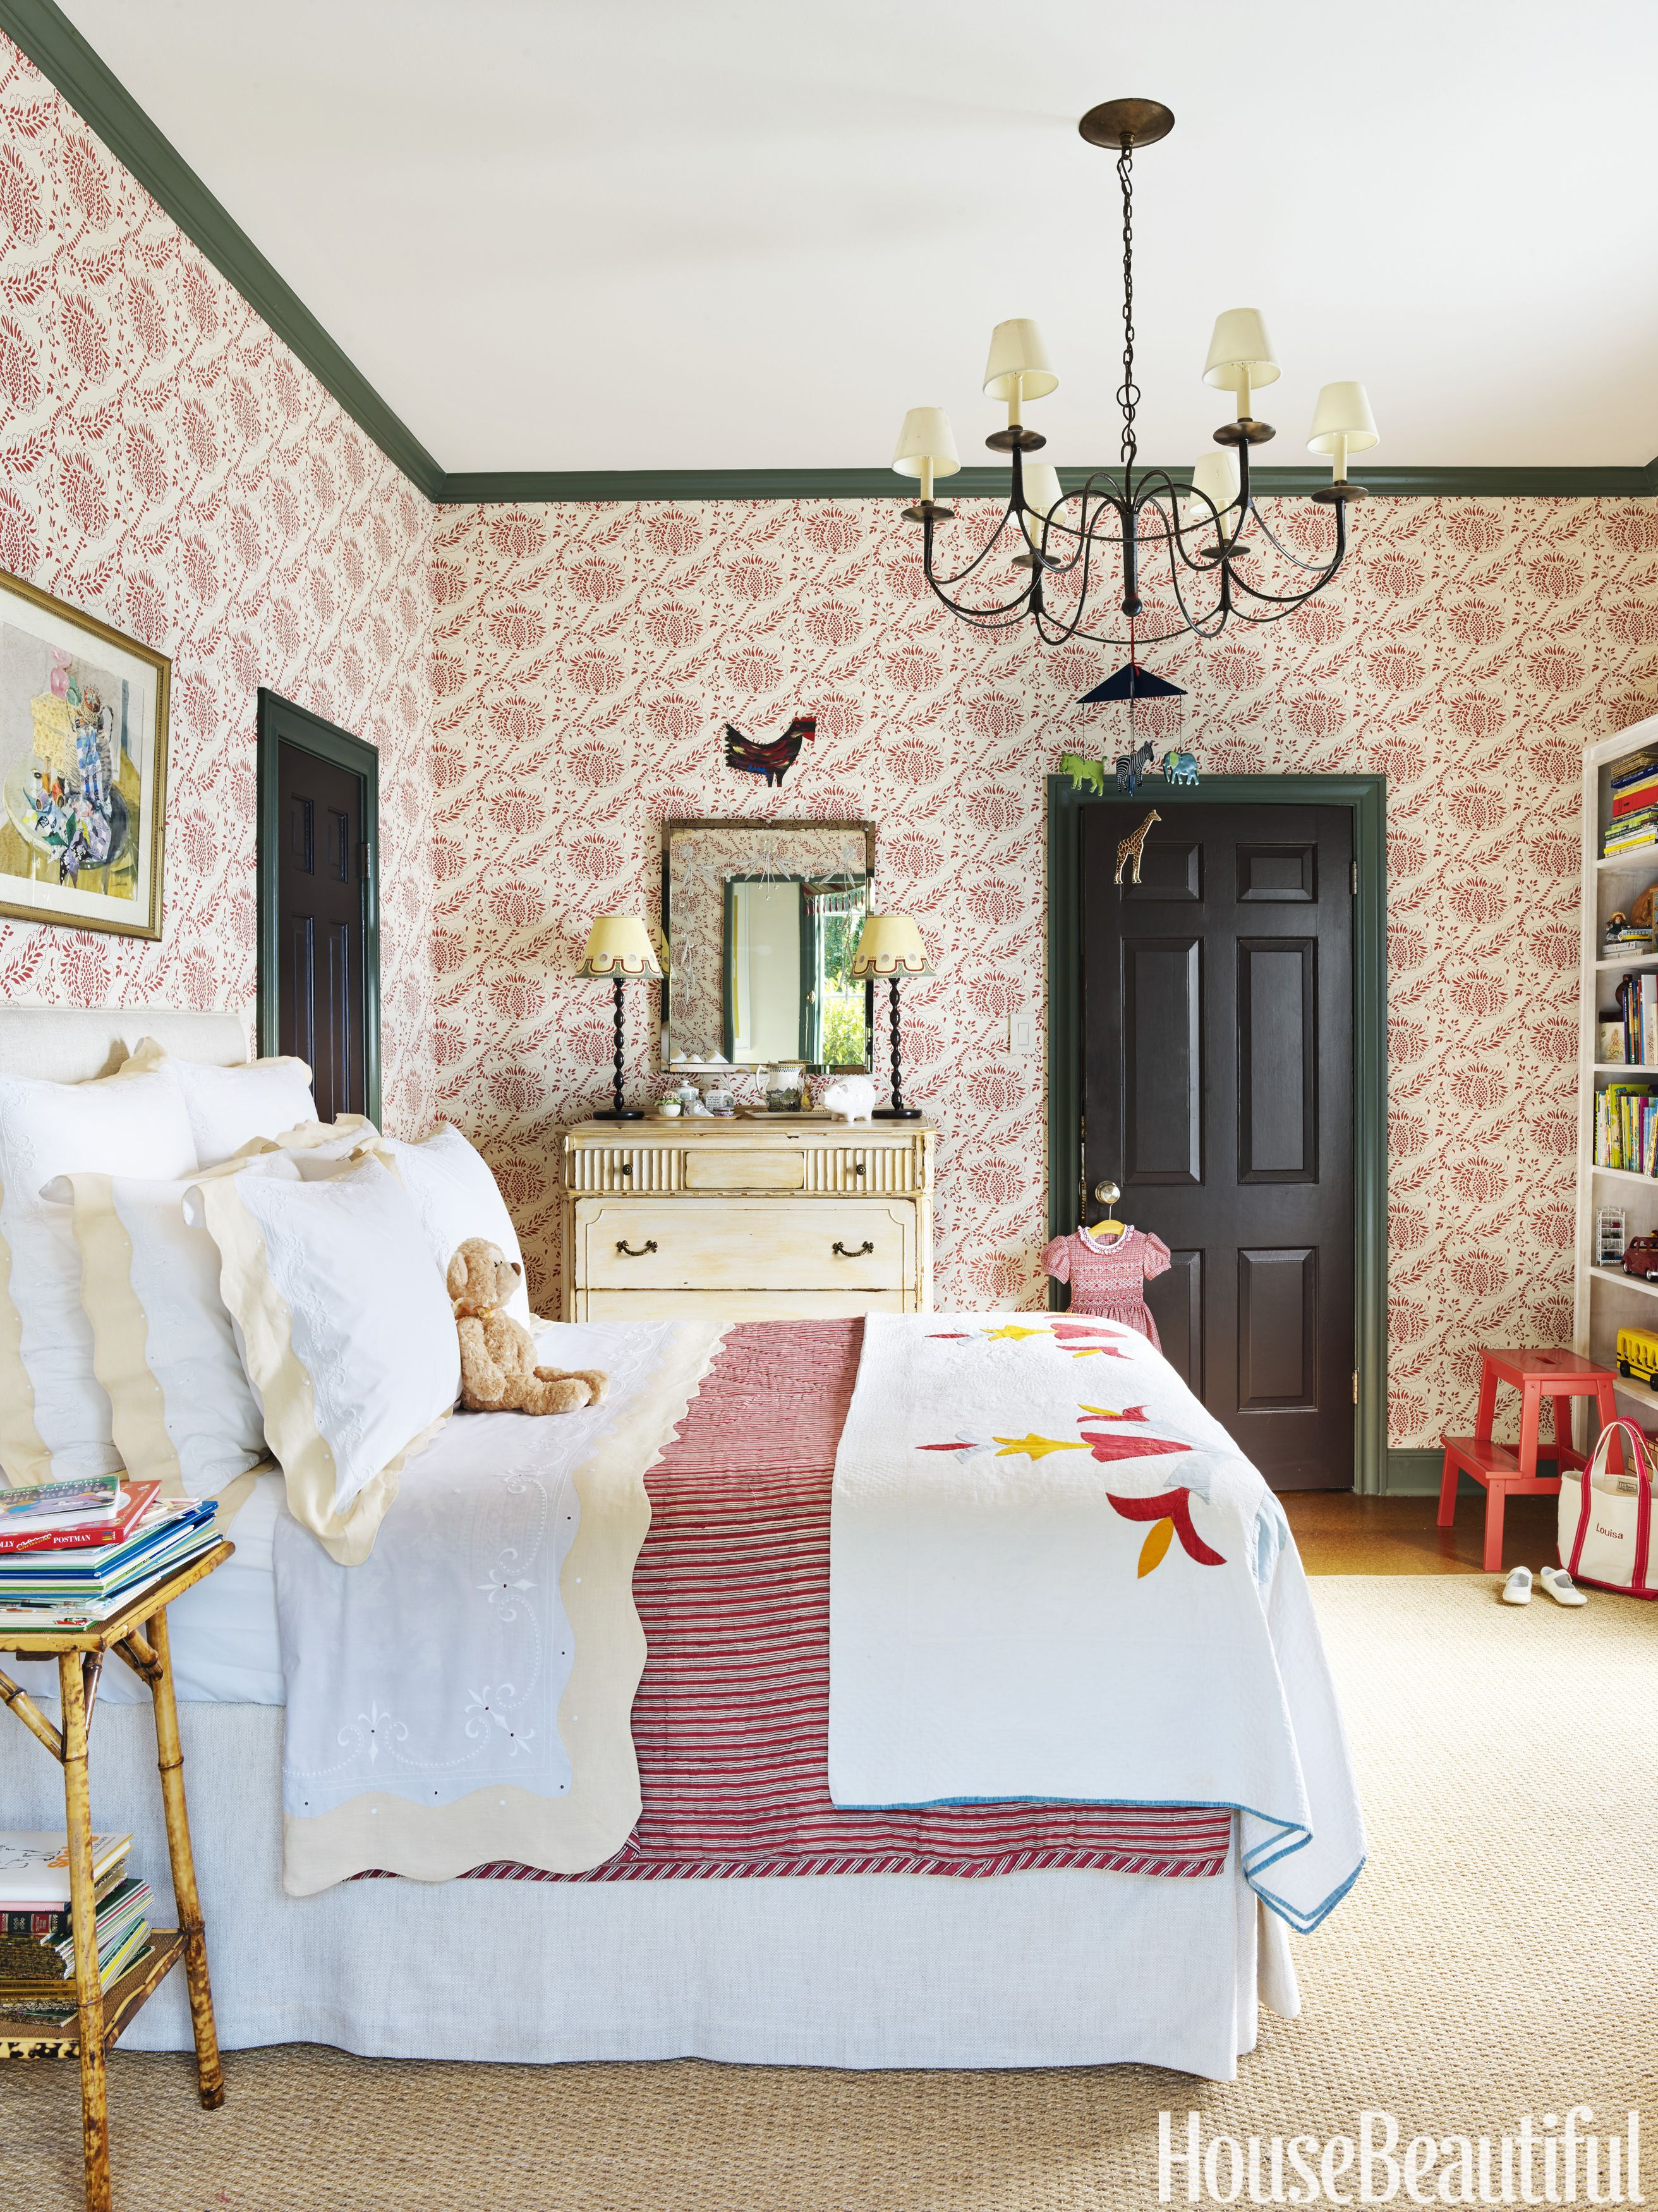 Christmas Morning Is A True Delight In A Festive Houston House House Interior Home Bedroom Design